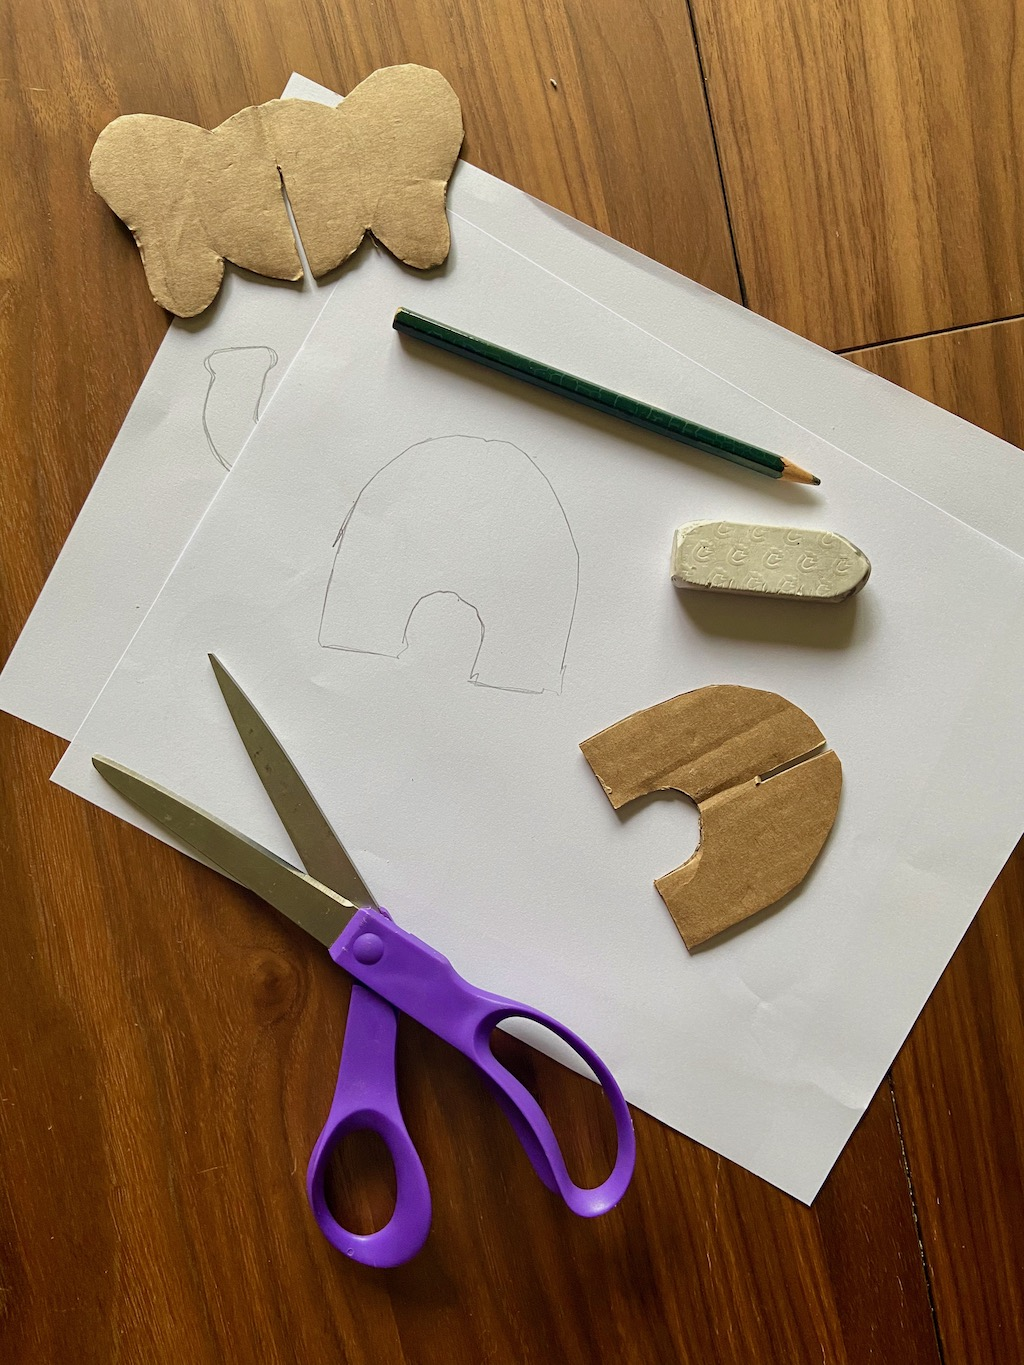 Draw the shape of a pair of legs for the elephant. You will make 2 of these pieces.